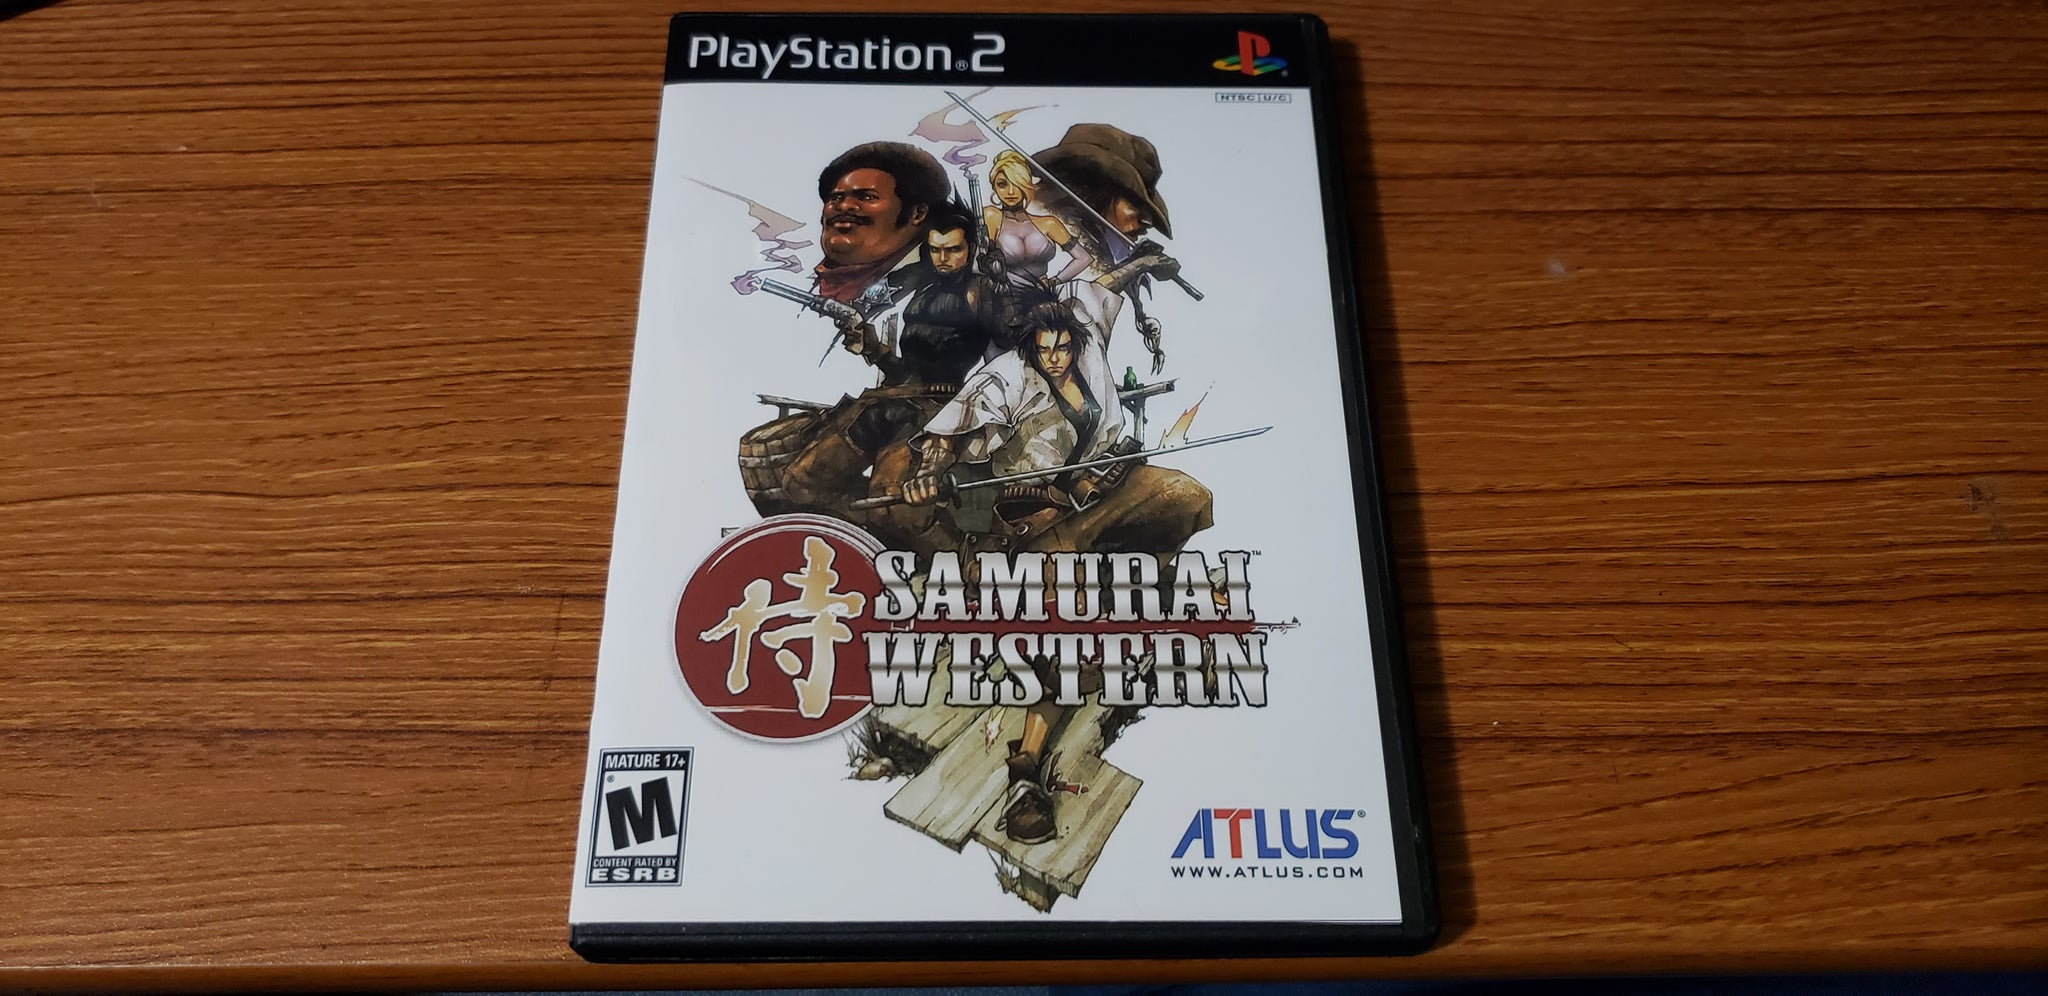 Samurai Western PS2 Reproduction